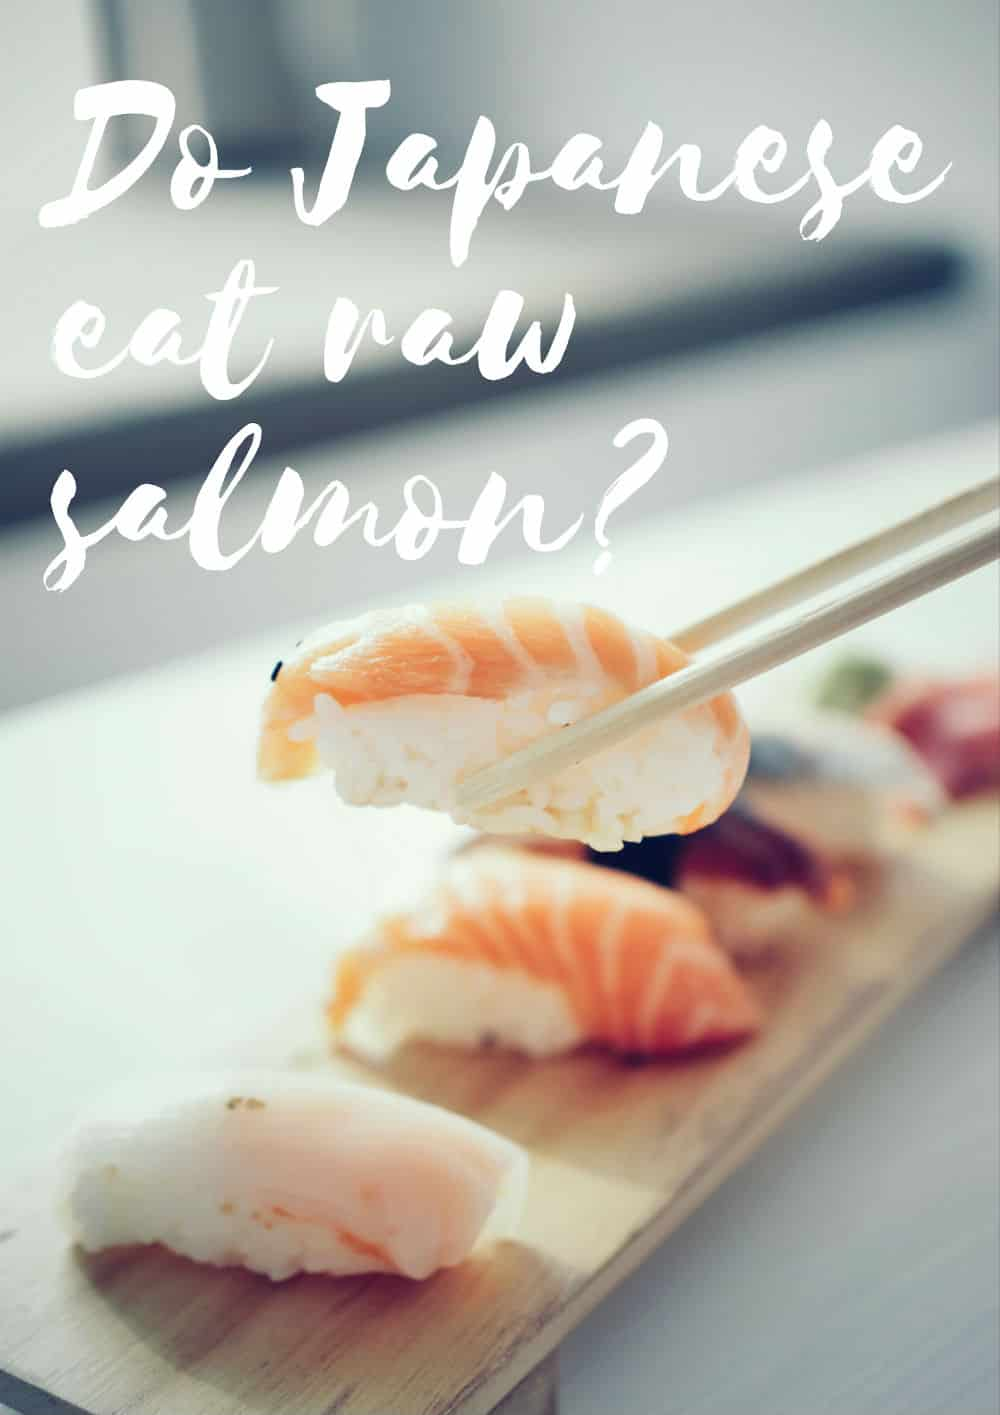 Do Japanese eat raw salmon